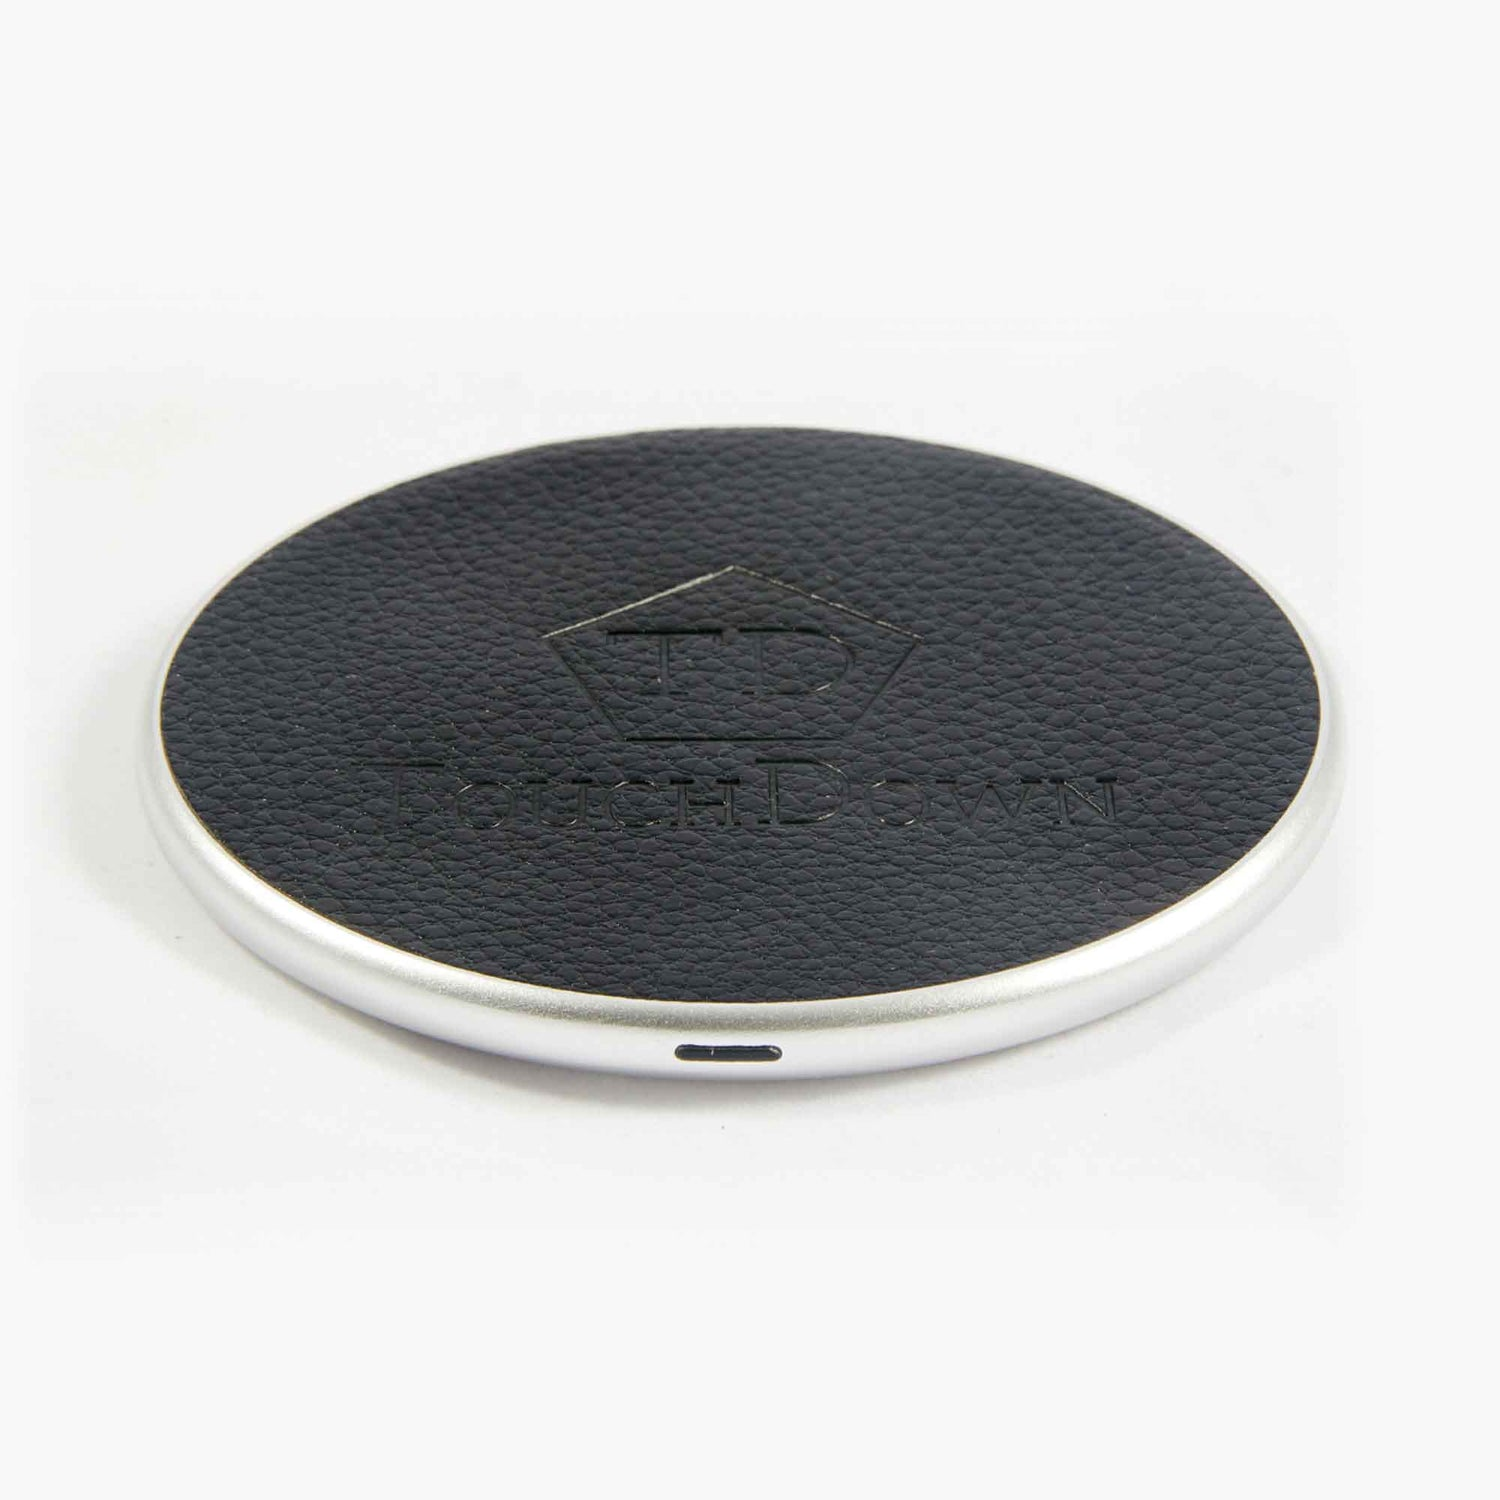 TOUCHDOWN CHARGING Silver Round Smartphone Wireless Charging Pad